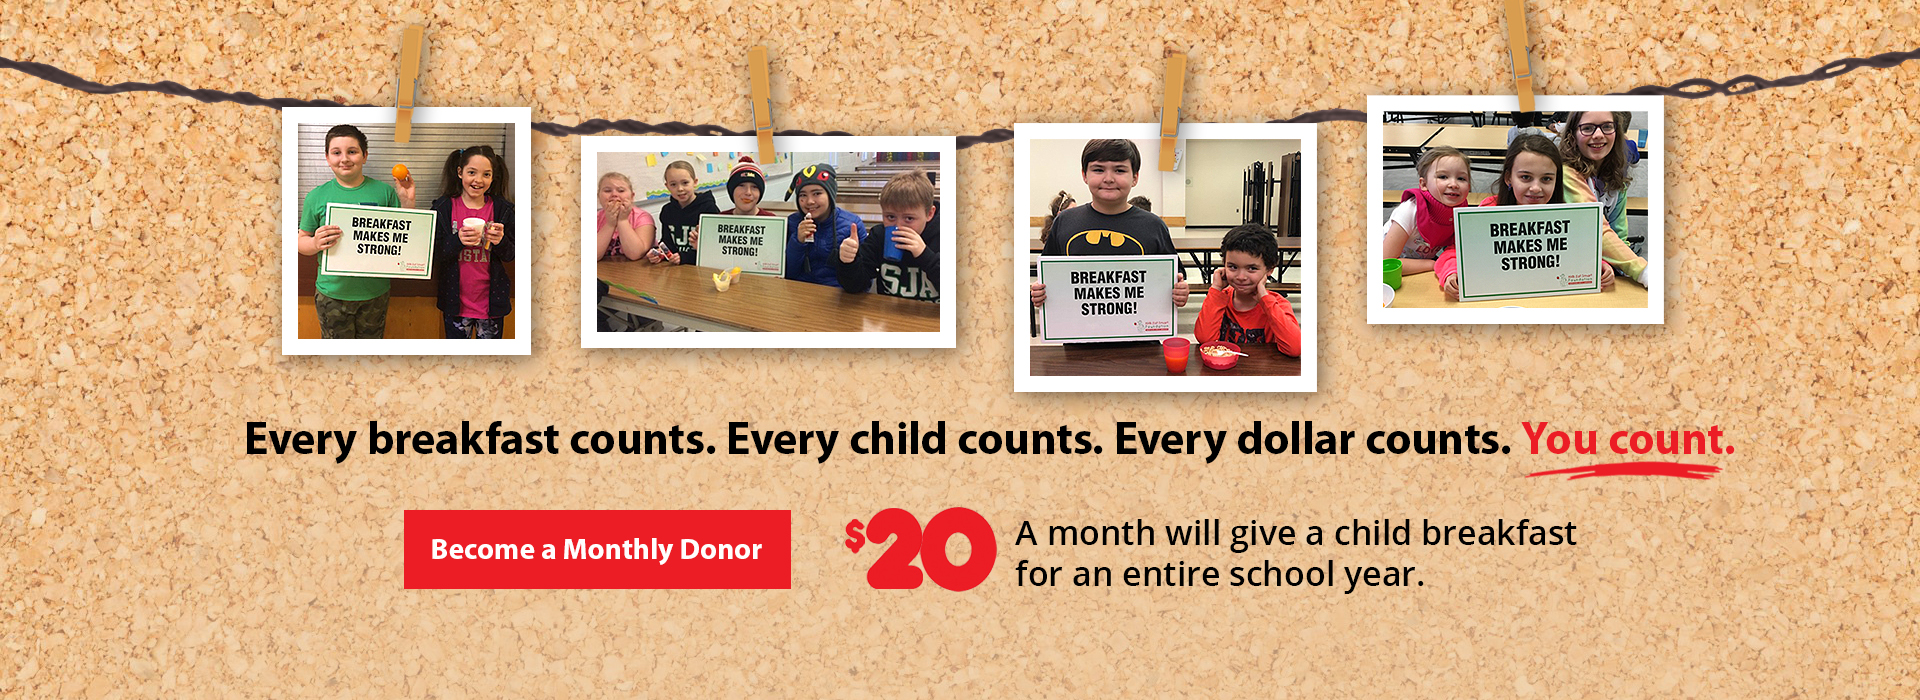 "Bulletin board with kids photos saying ""Breakfast Makes Me Strong"". Text overlay reads: Every breakfast counts. Every child counts. Every dollar counts. You count. Become a monthly donor. $20 a month will give a child breakfast for an entire school year."